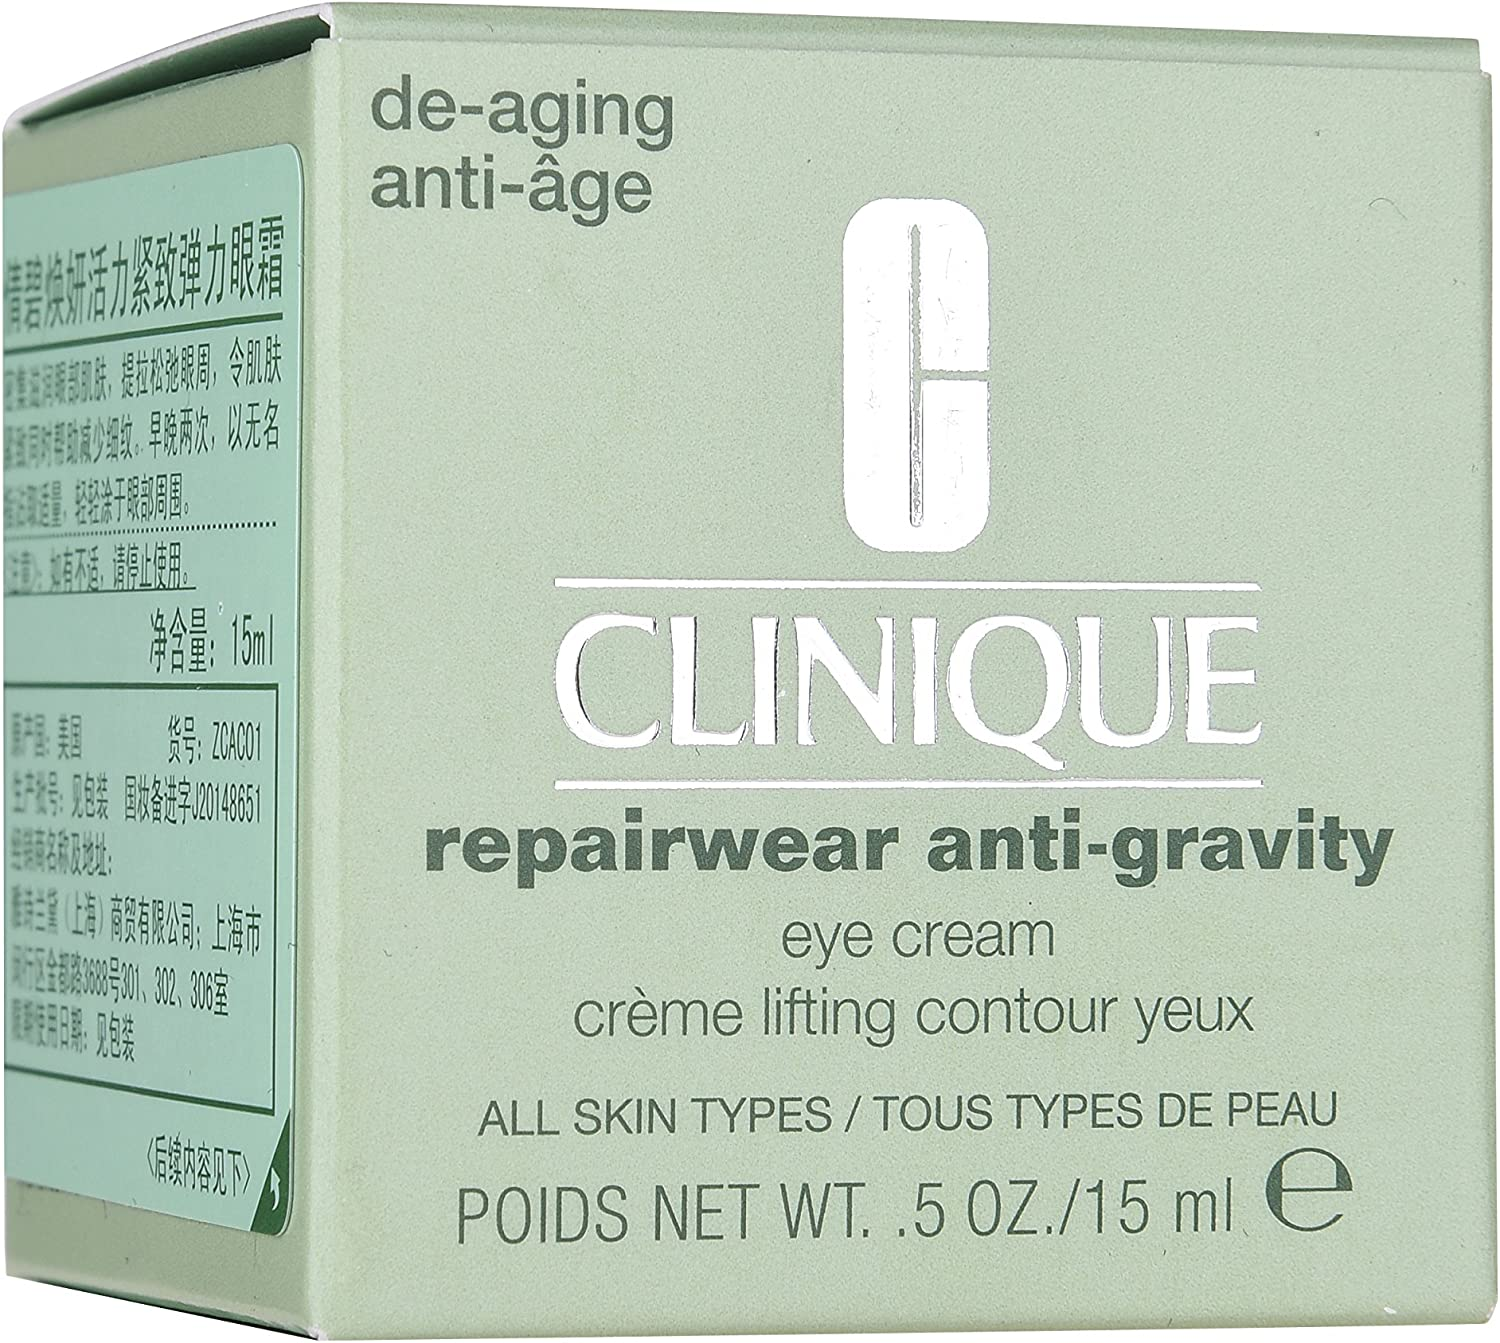 Clinique Repairwear Anti-Gravity Eye Cream for Unisex, 0.5 Ounce